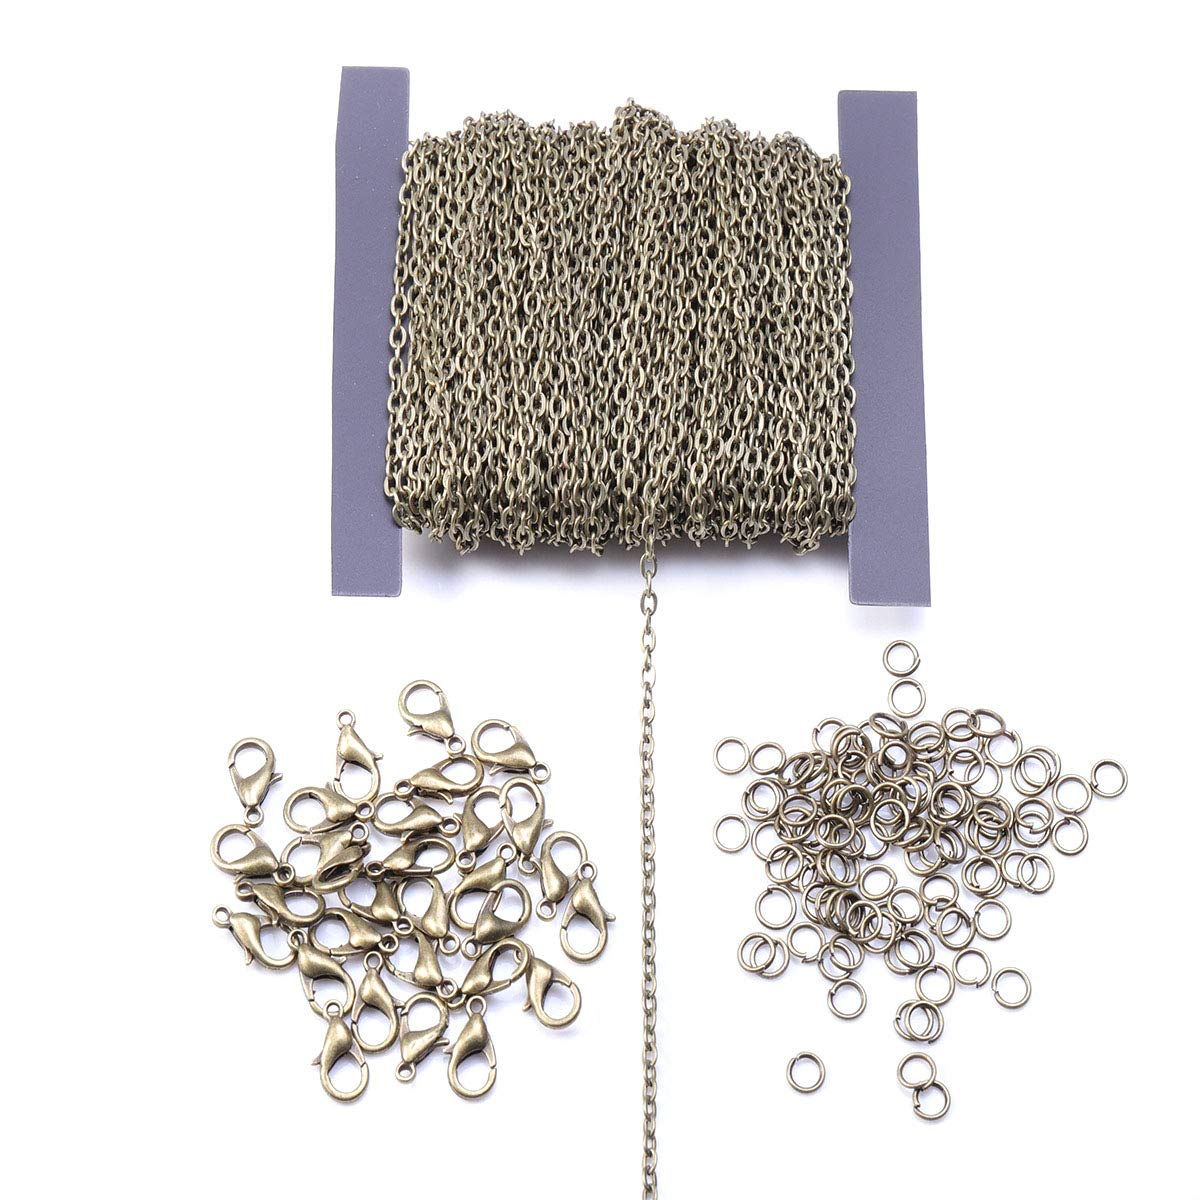 Silver 3x4mm Cable Link Chain with 30 Pcs Lobster Clasps and 100 Pcs Open Jump Rings for DIY Jewelry Making Numblartd 39Ft Electroplate Flat Pressure Curb Cross Chain Cable Twisted Iron Link